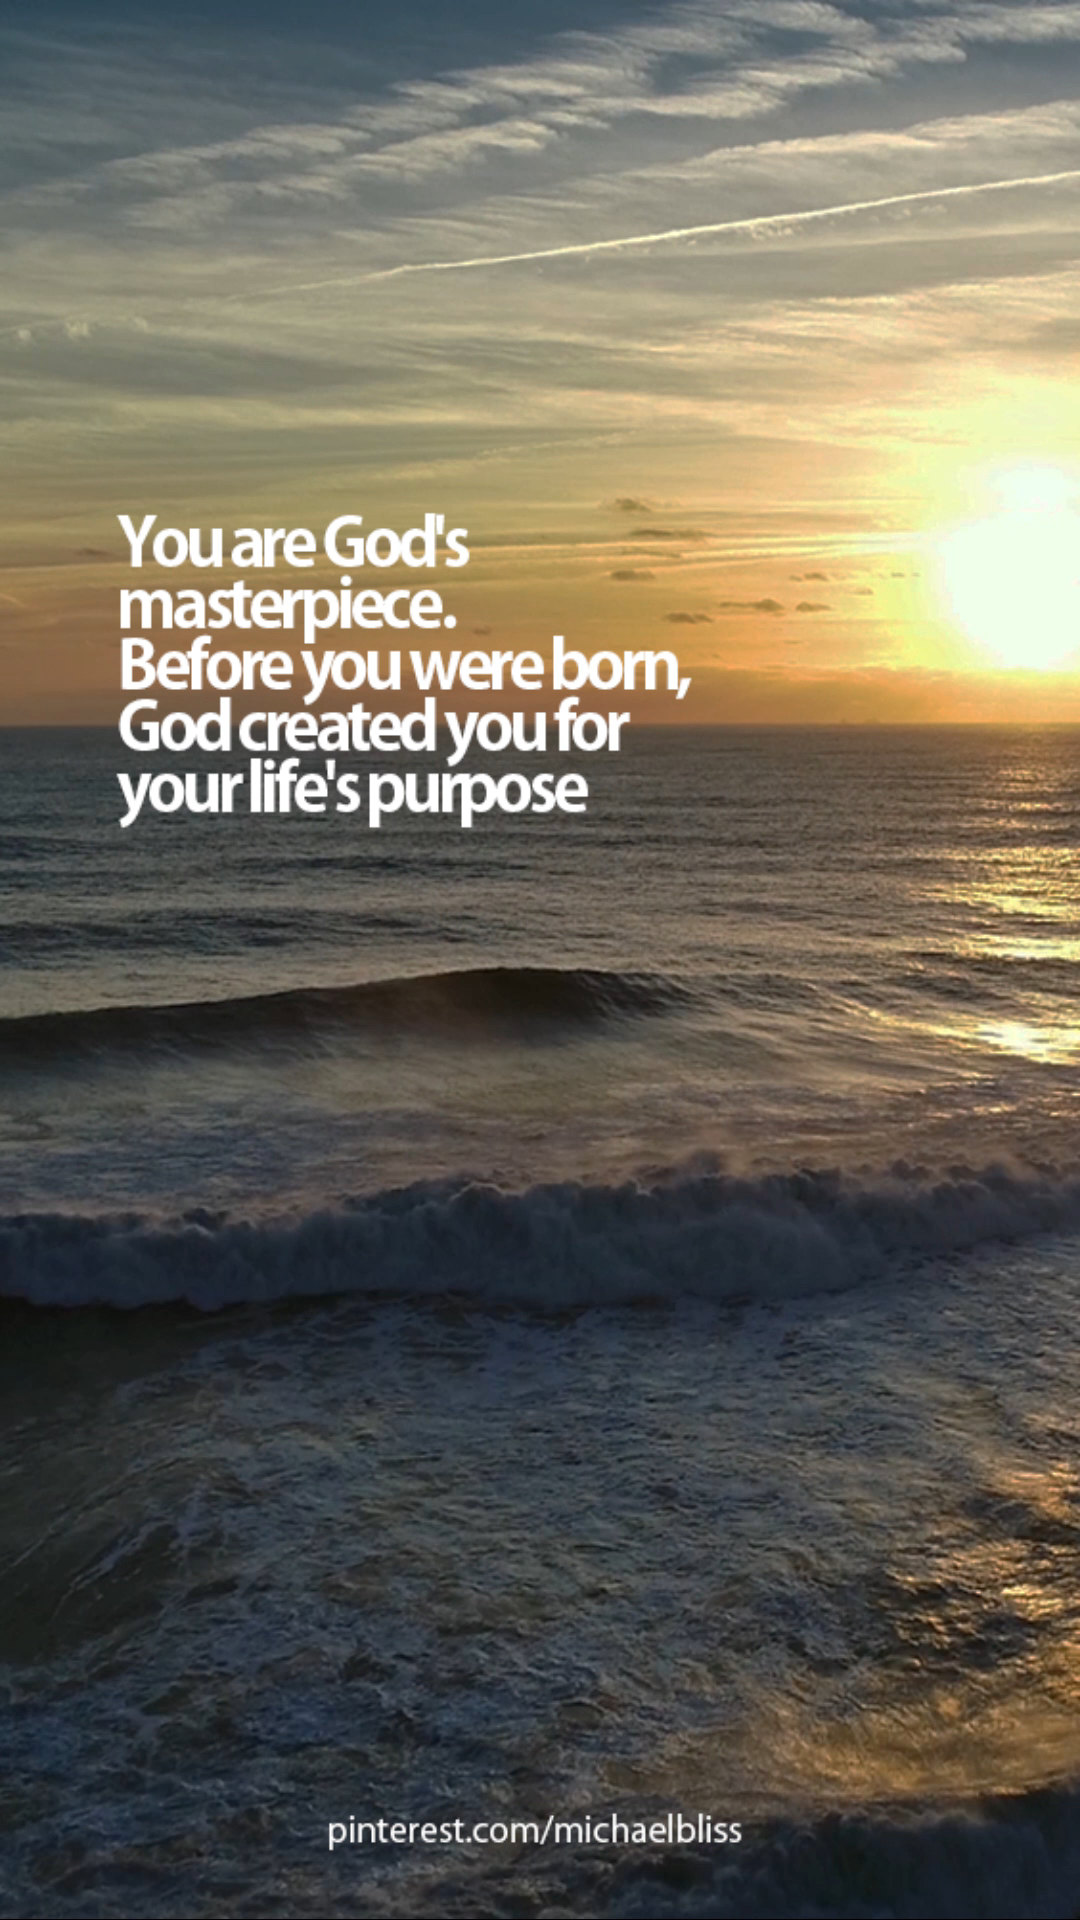 You are God's masterpiece. Before you were born, God created you for your life's purpose